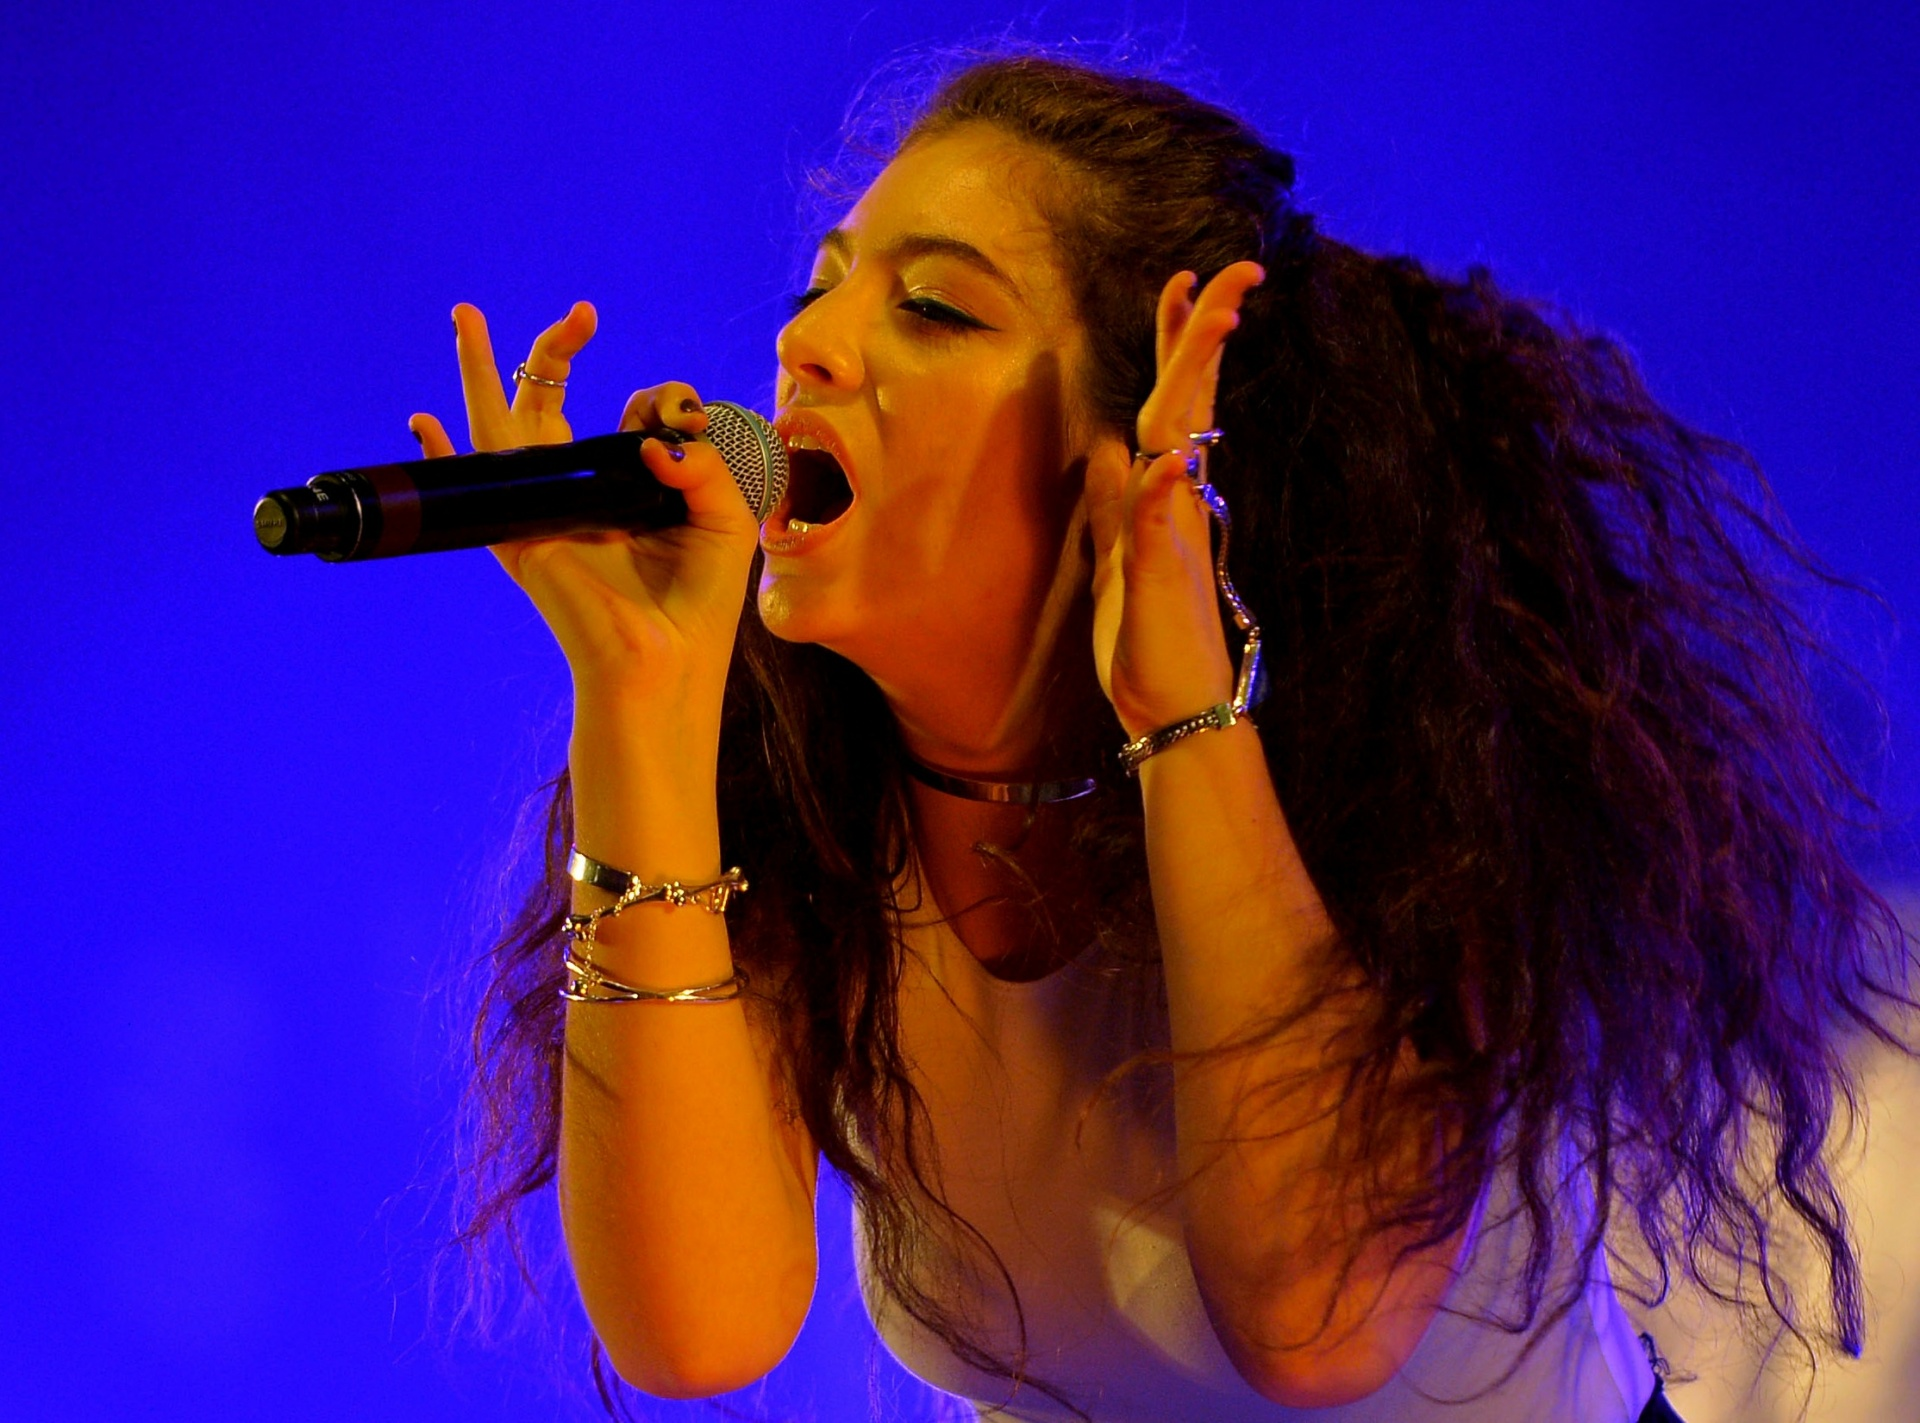 Lorde's 'Melodrama' is here: Download and streaming options for the new album